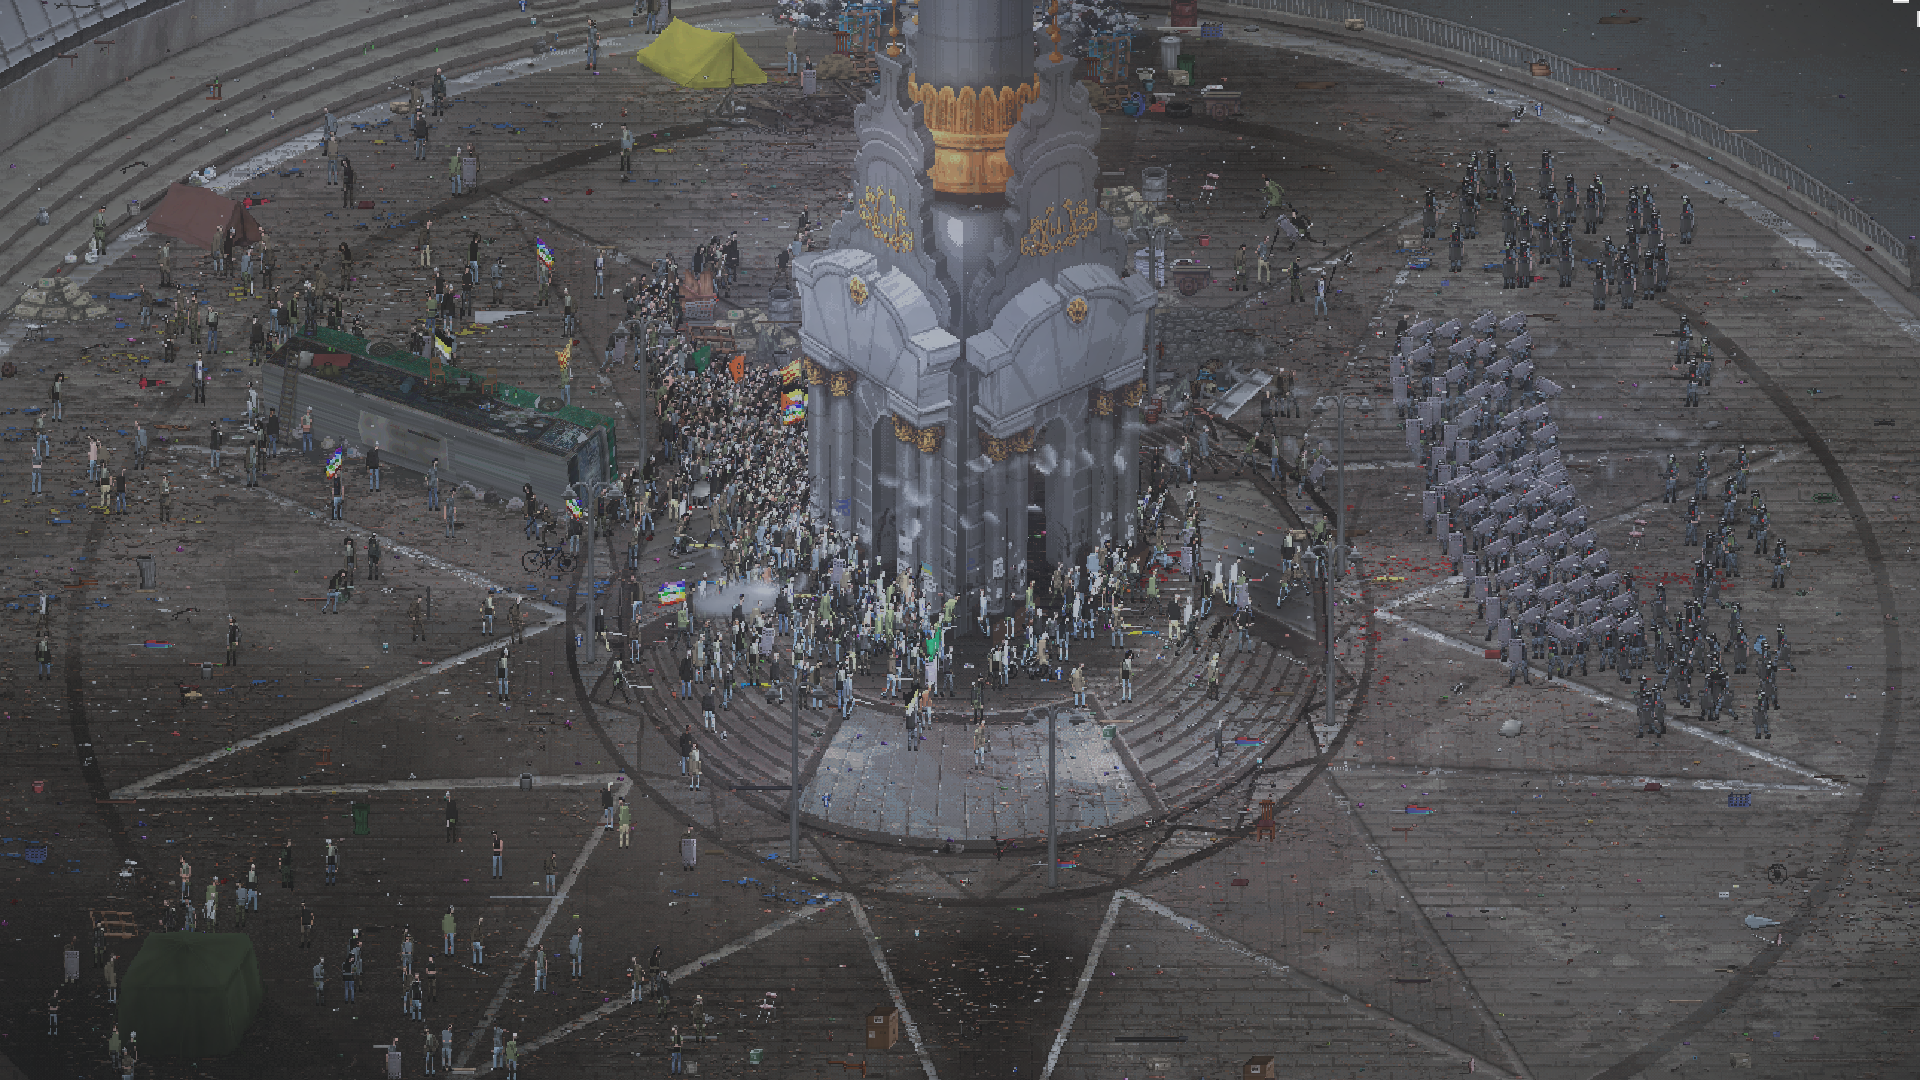 Anarchy reigns as RIOT: Civil Unrest releases this week